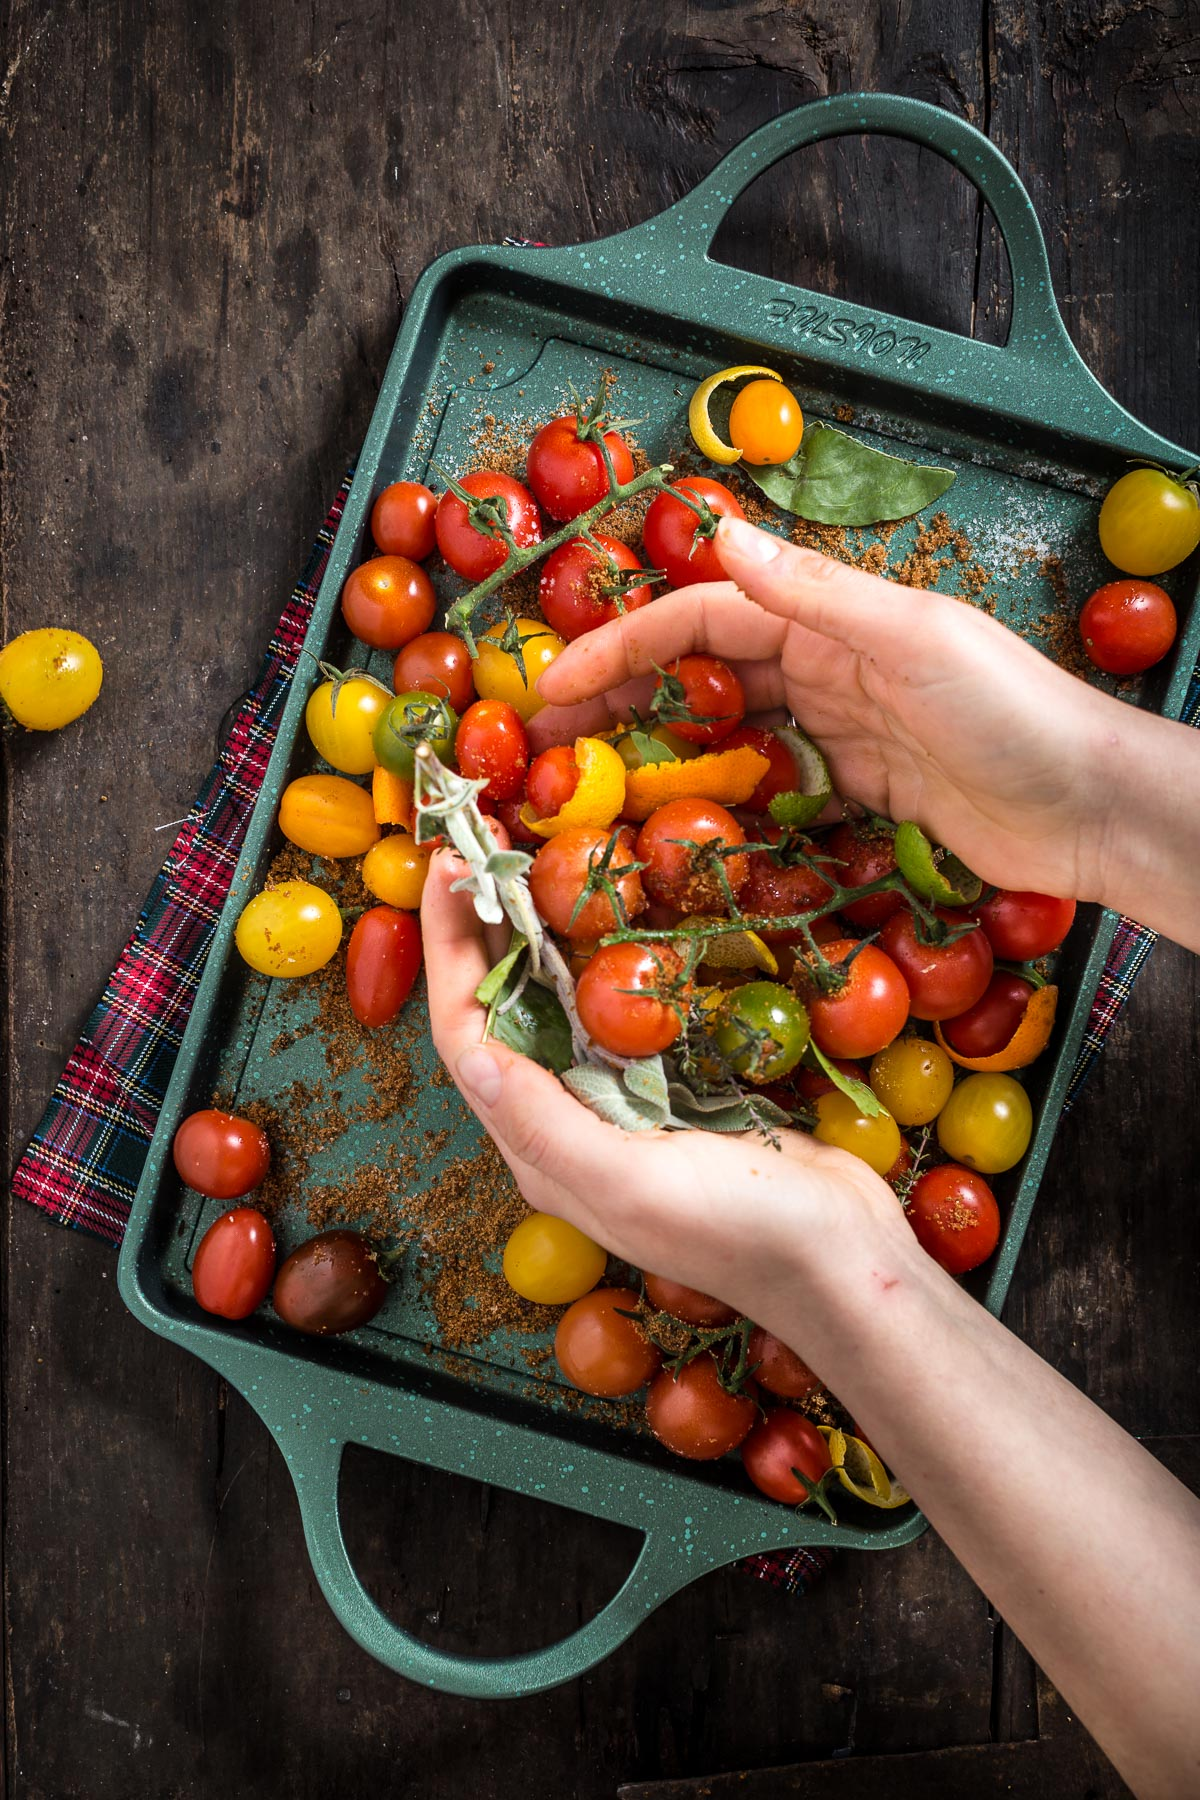 quick and easy cherry tomato confit recipe - ricetta pomodorini confit agli agrumi